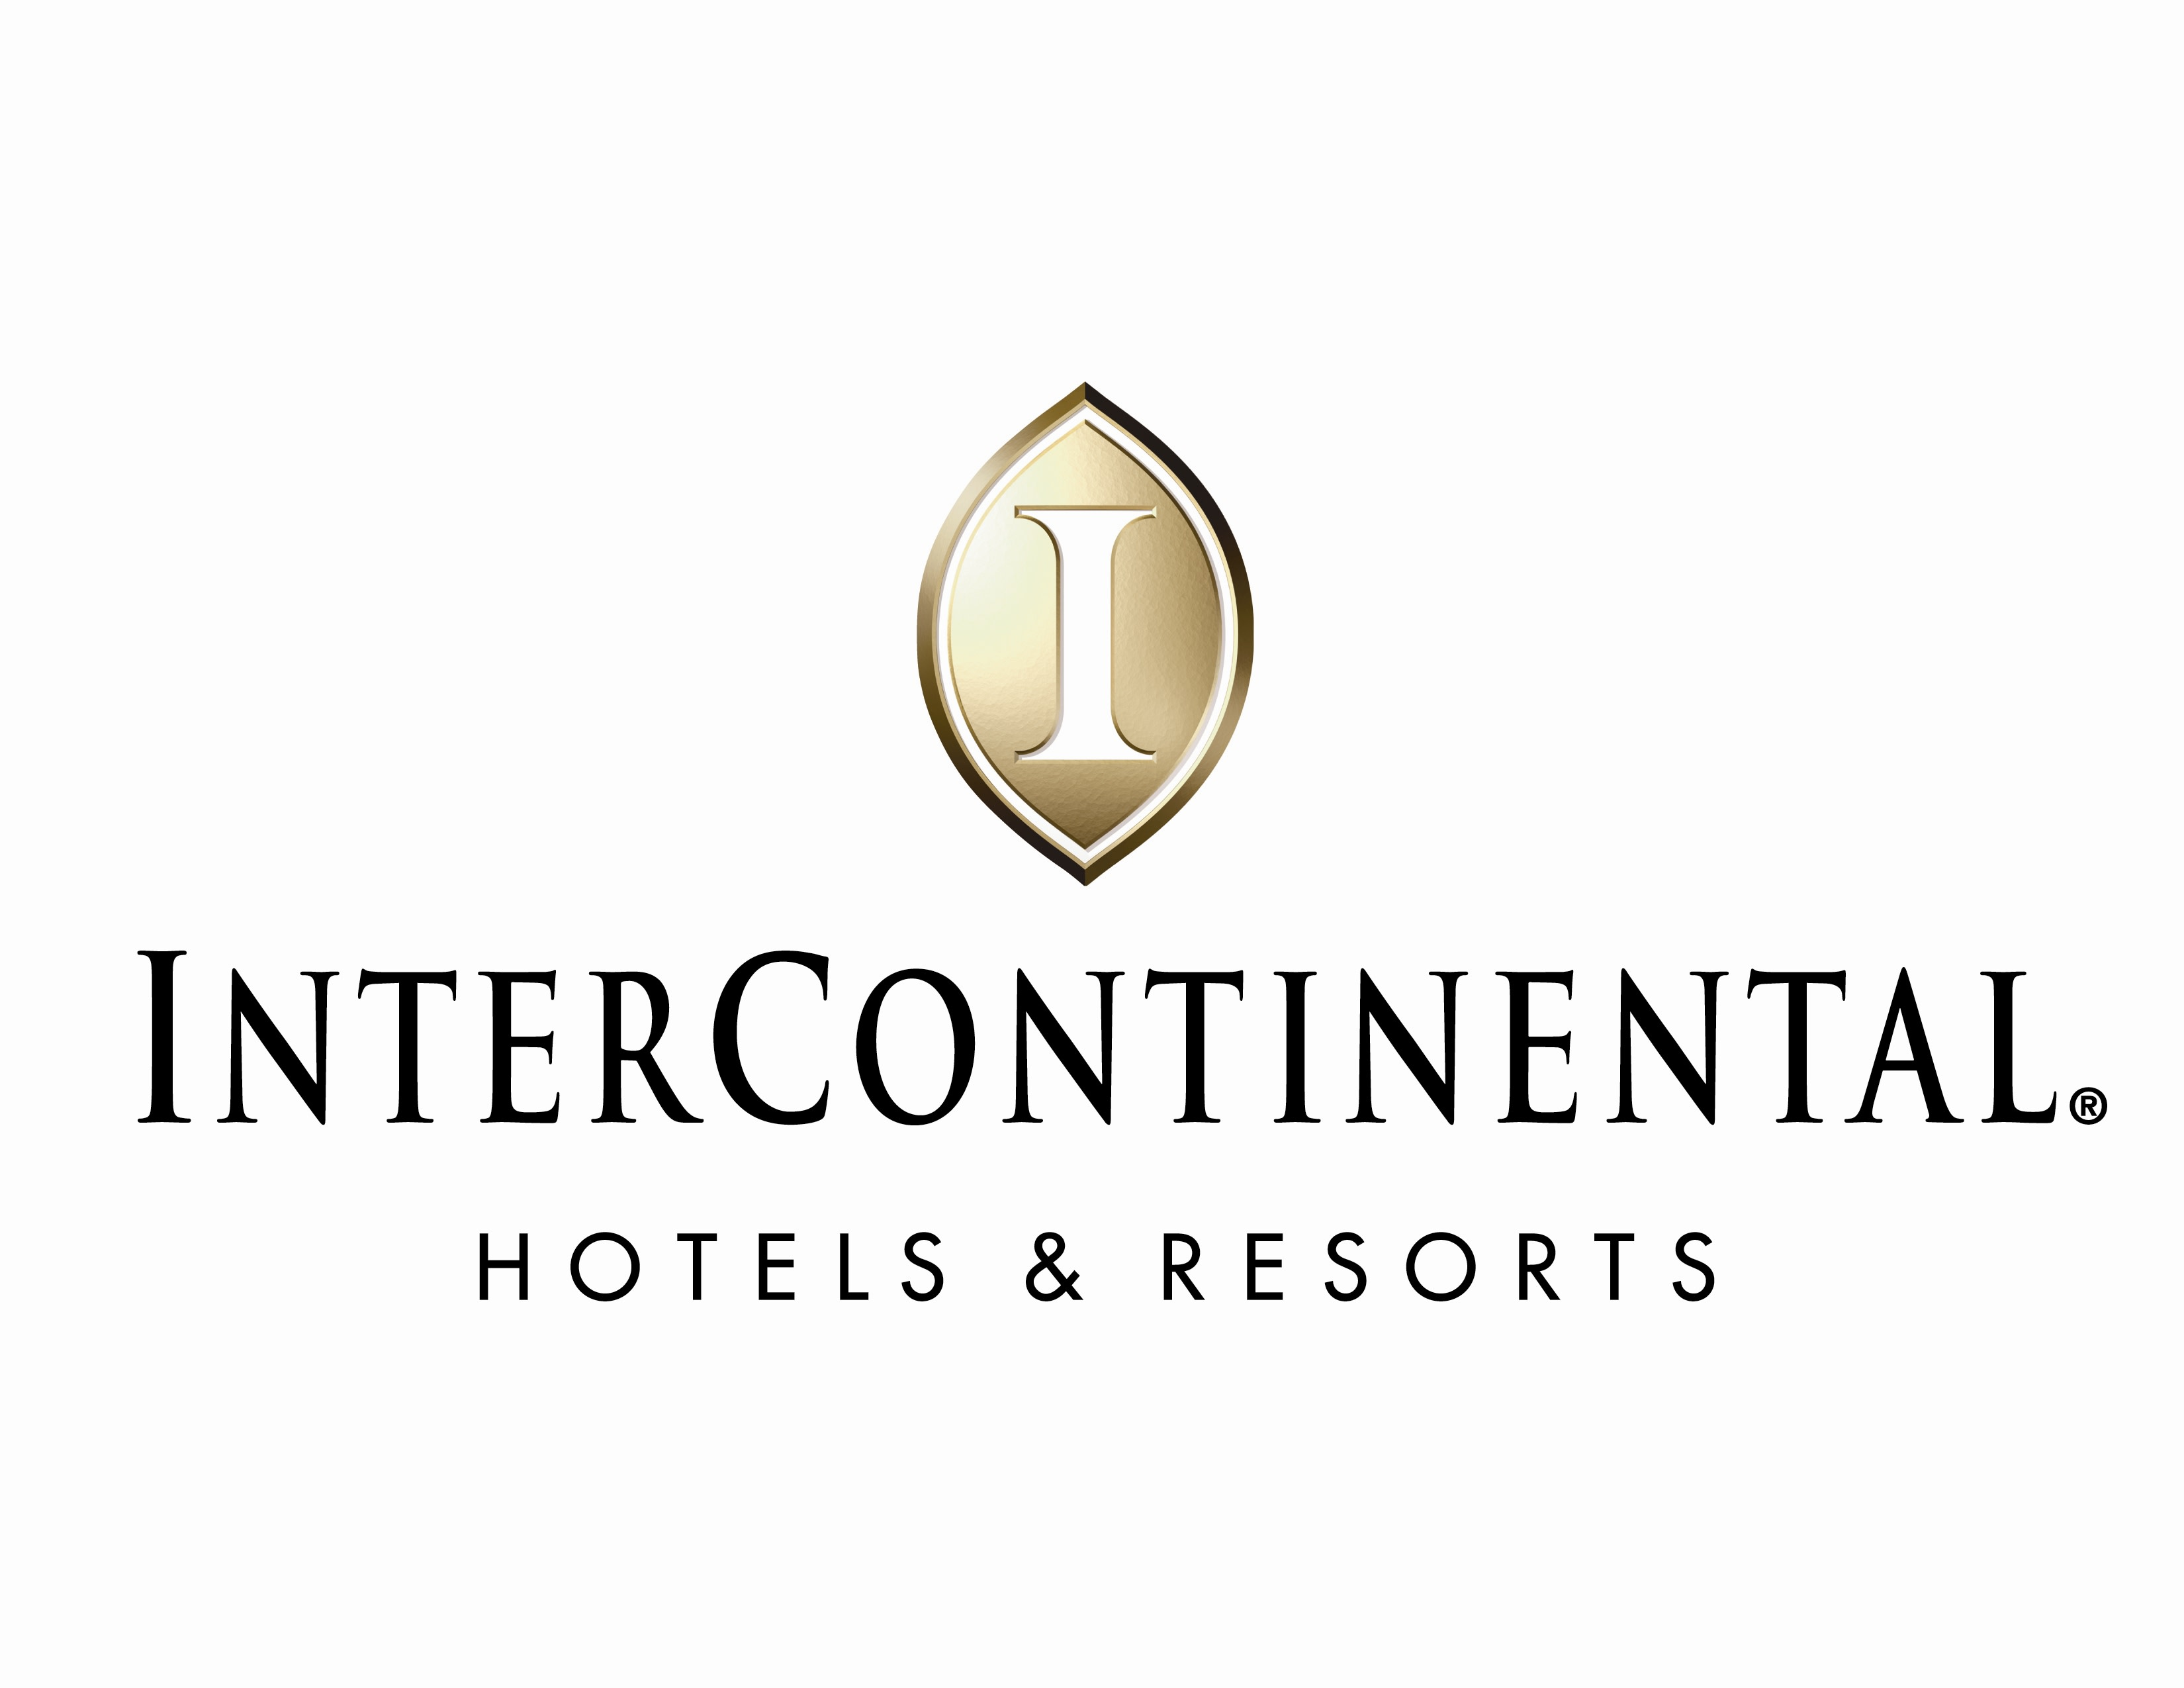 Intercontinental Hotels company logo